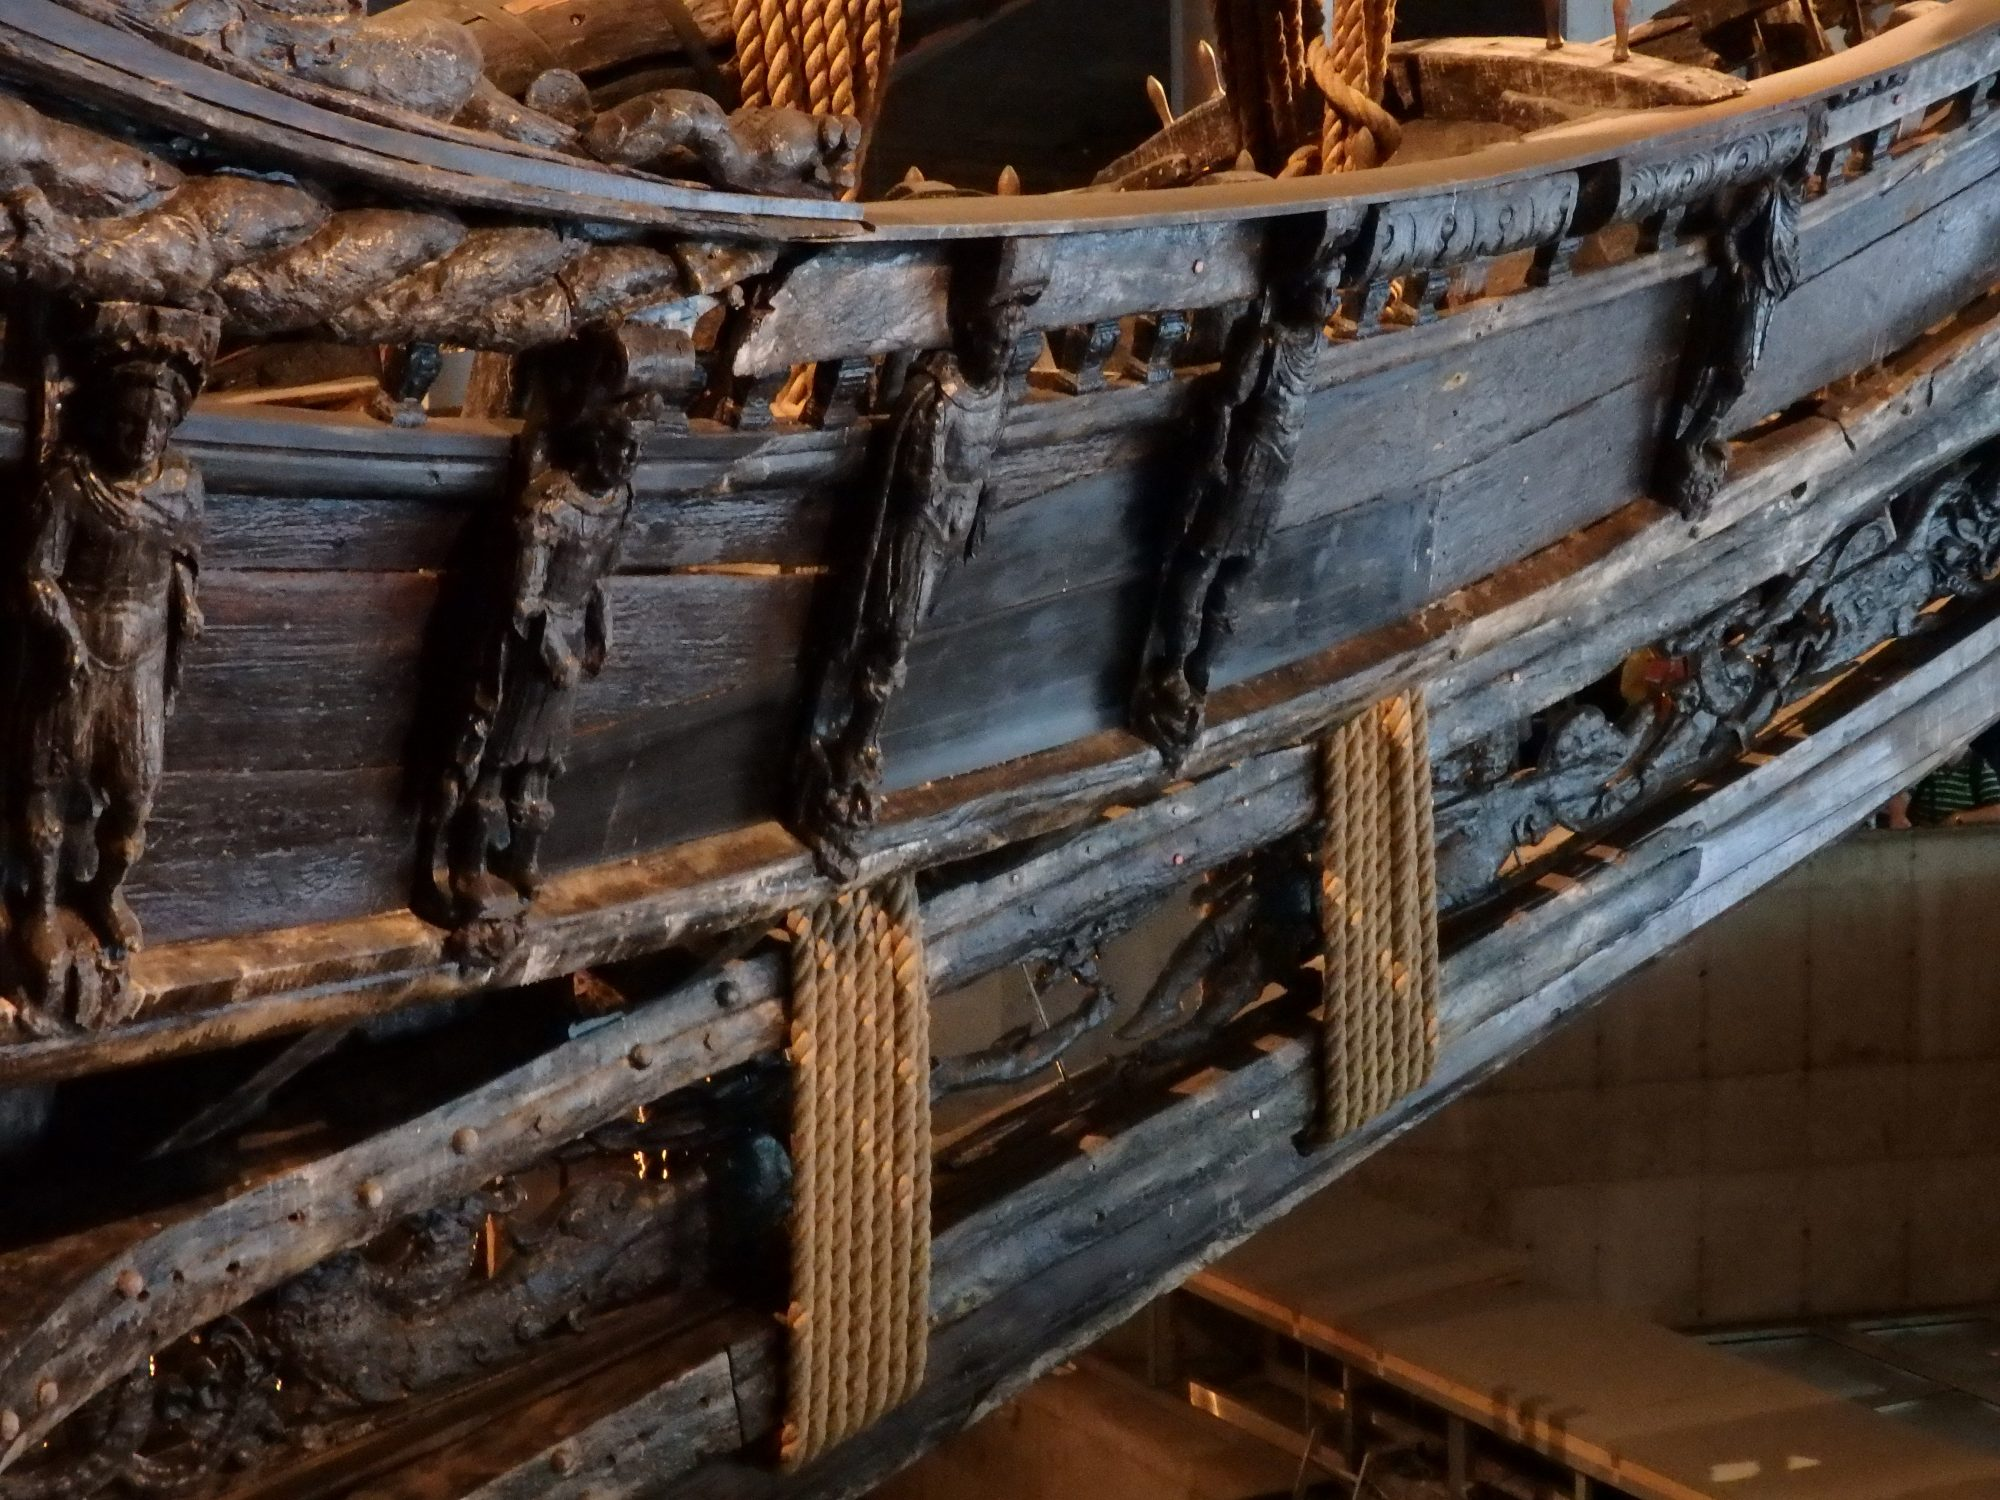 A row of carvings of Roman Emperors on the Vasa: Stockholm, Sweden